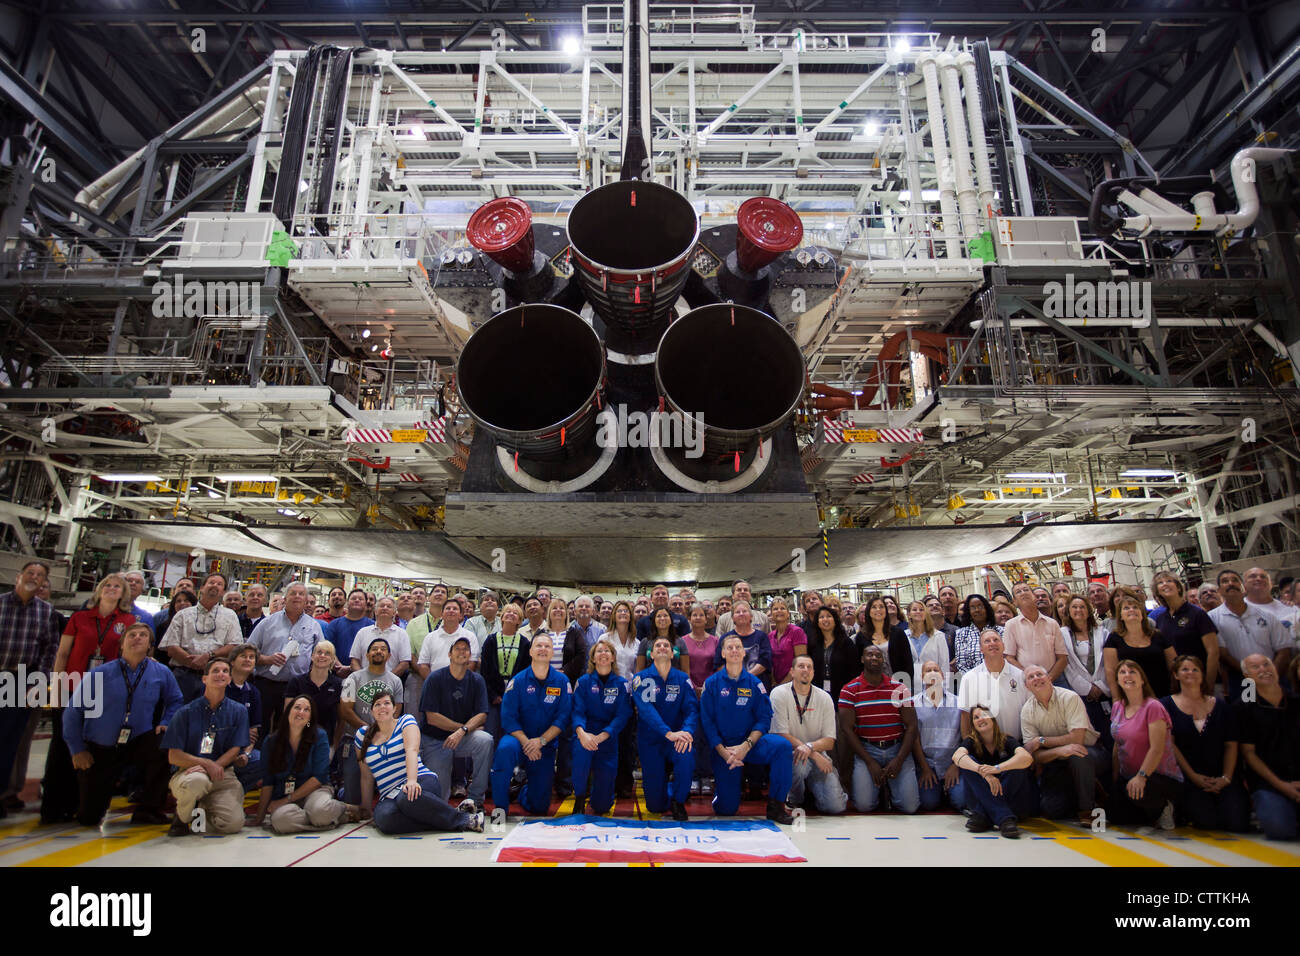 The STS-135 crew members pose for a group photo under the space shuttle Atlantis in the Orbiter Processing Facility - Stock Image